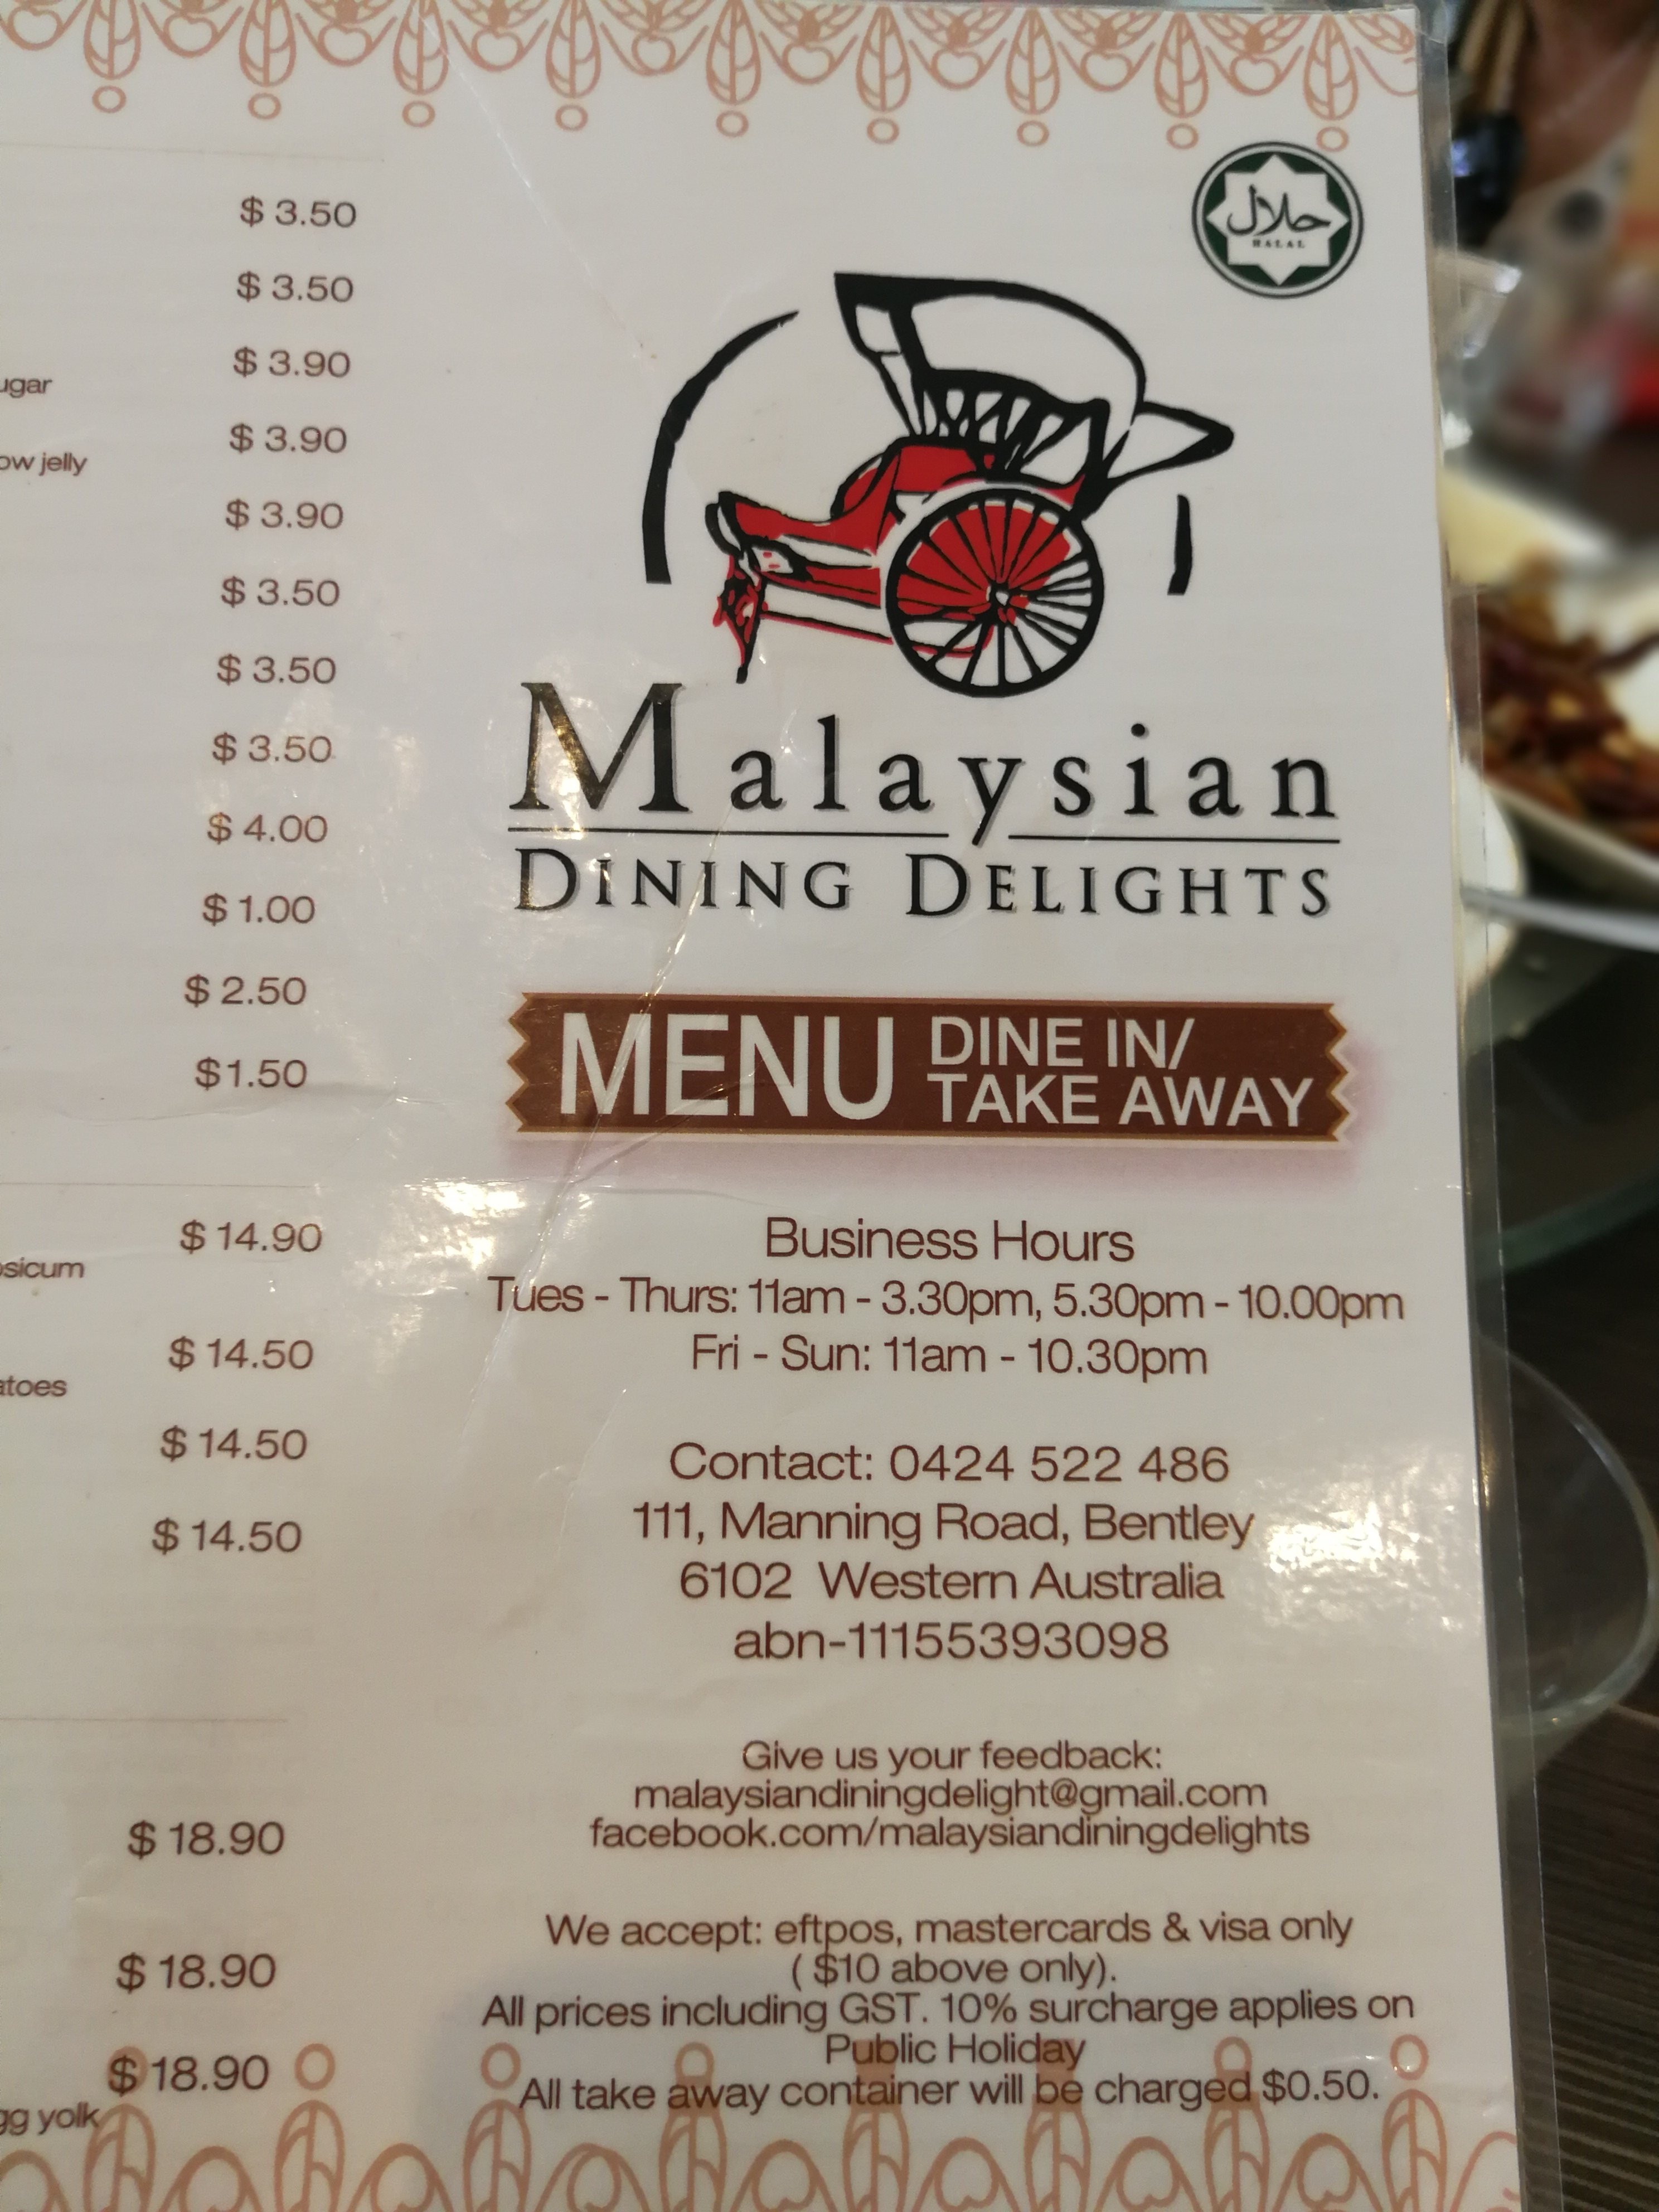 Malaysian Dining Delights - Pubs Perth